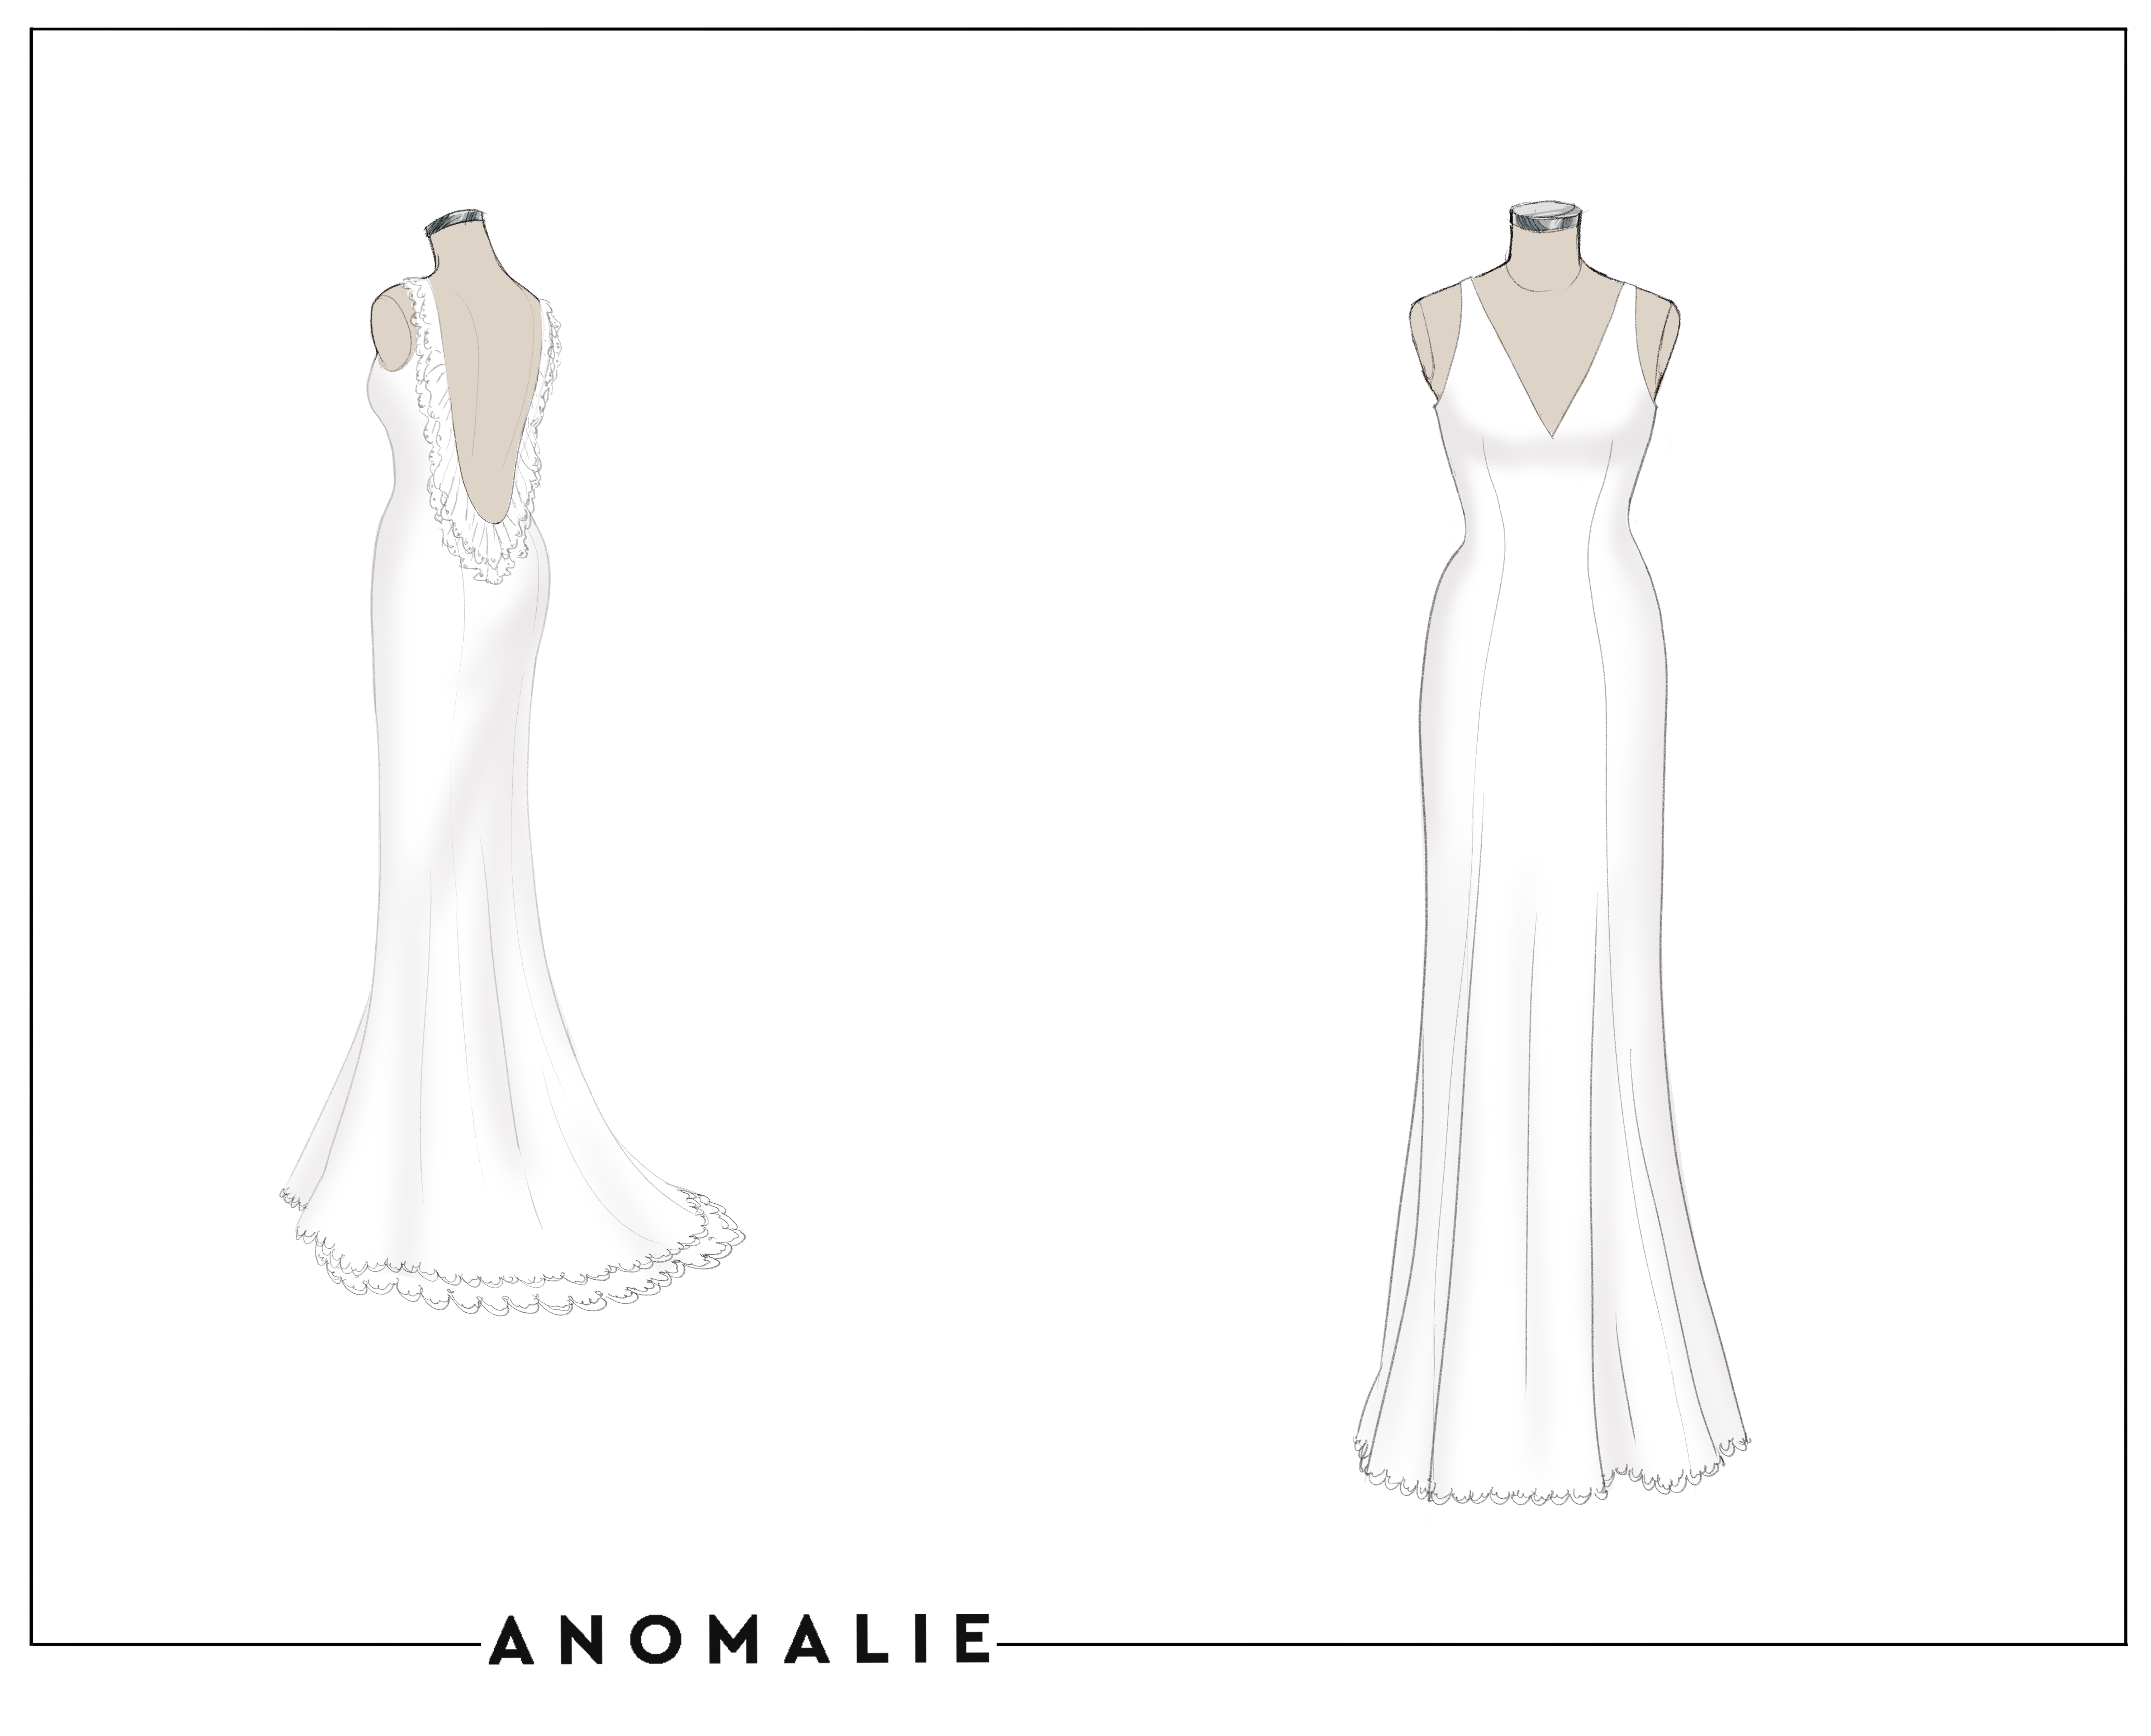 Anomalie sketch of the gown without the overskirt.